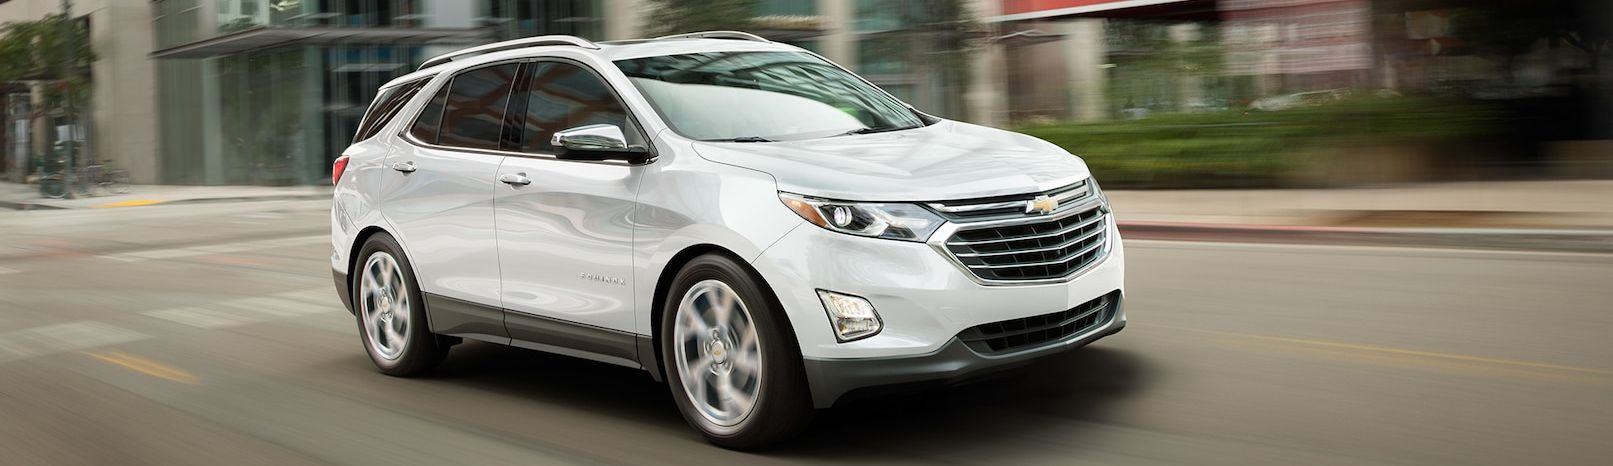 2019 Chevrolet Equinox for Sale near Lansing, IL